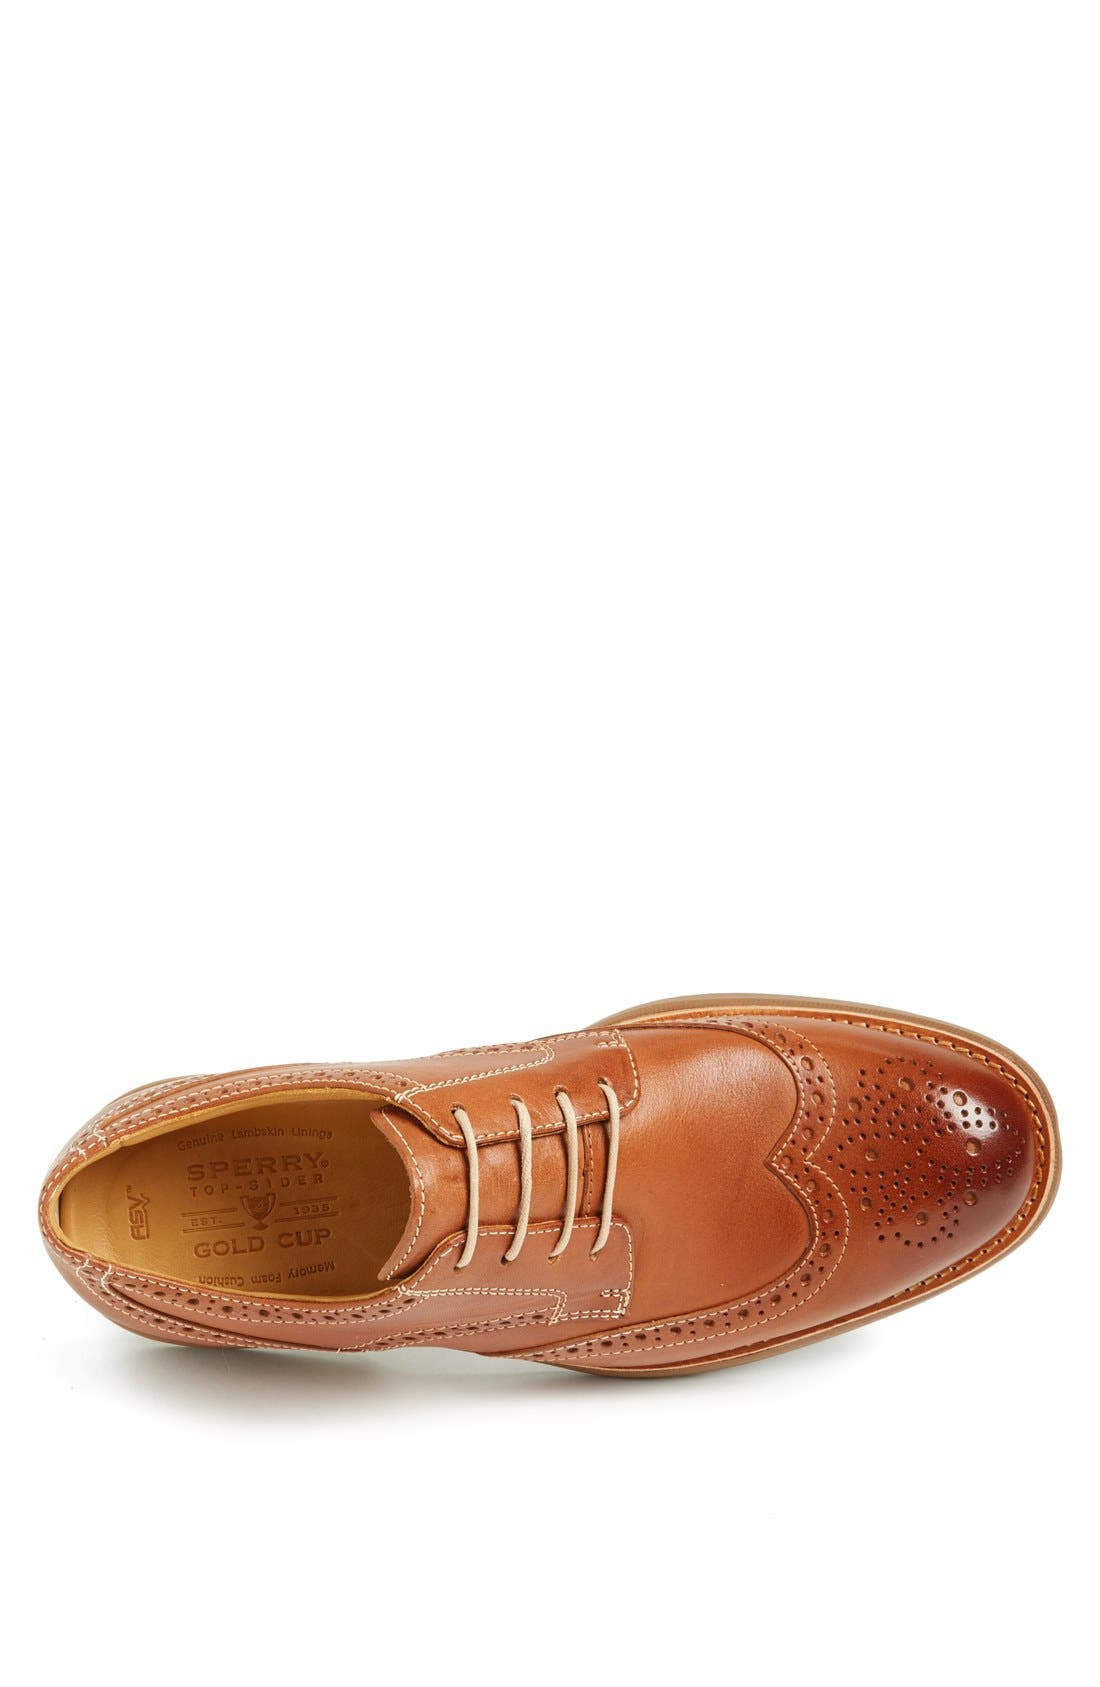 Alternate Image 3  - Sperry 'Gold Cup - Bellingham' Wingtip